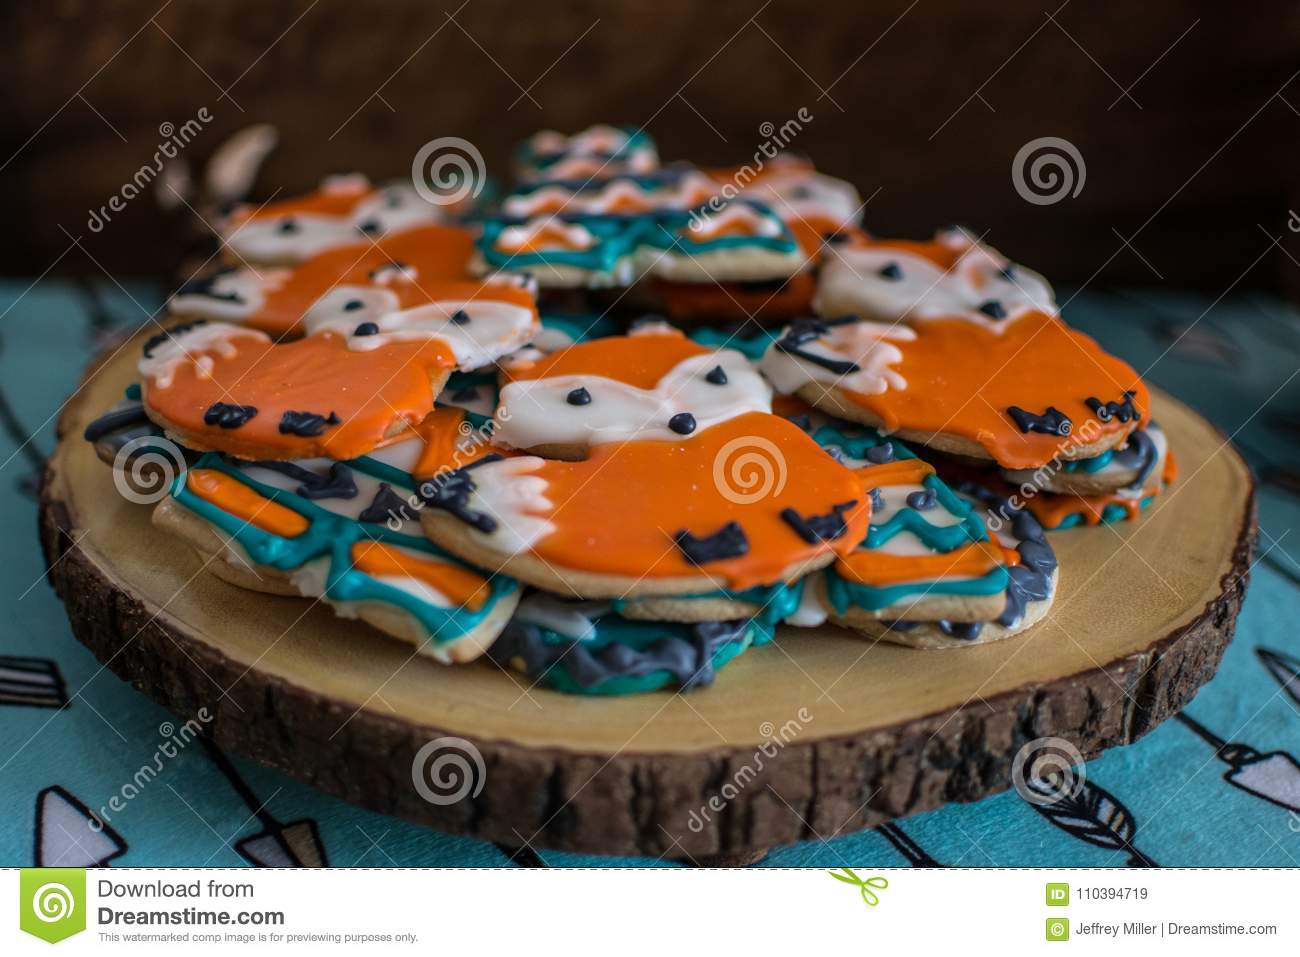 Fox And Teepee Cookies For An Animal And Outdoor Adventure Theme